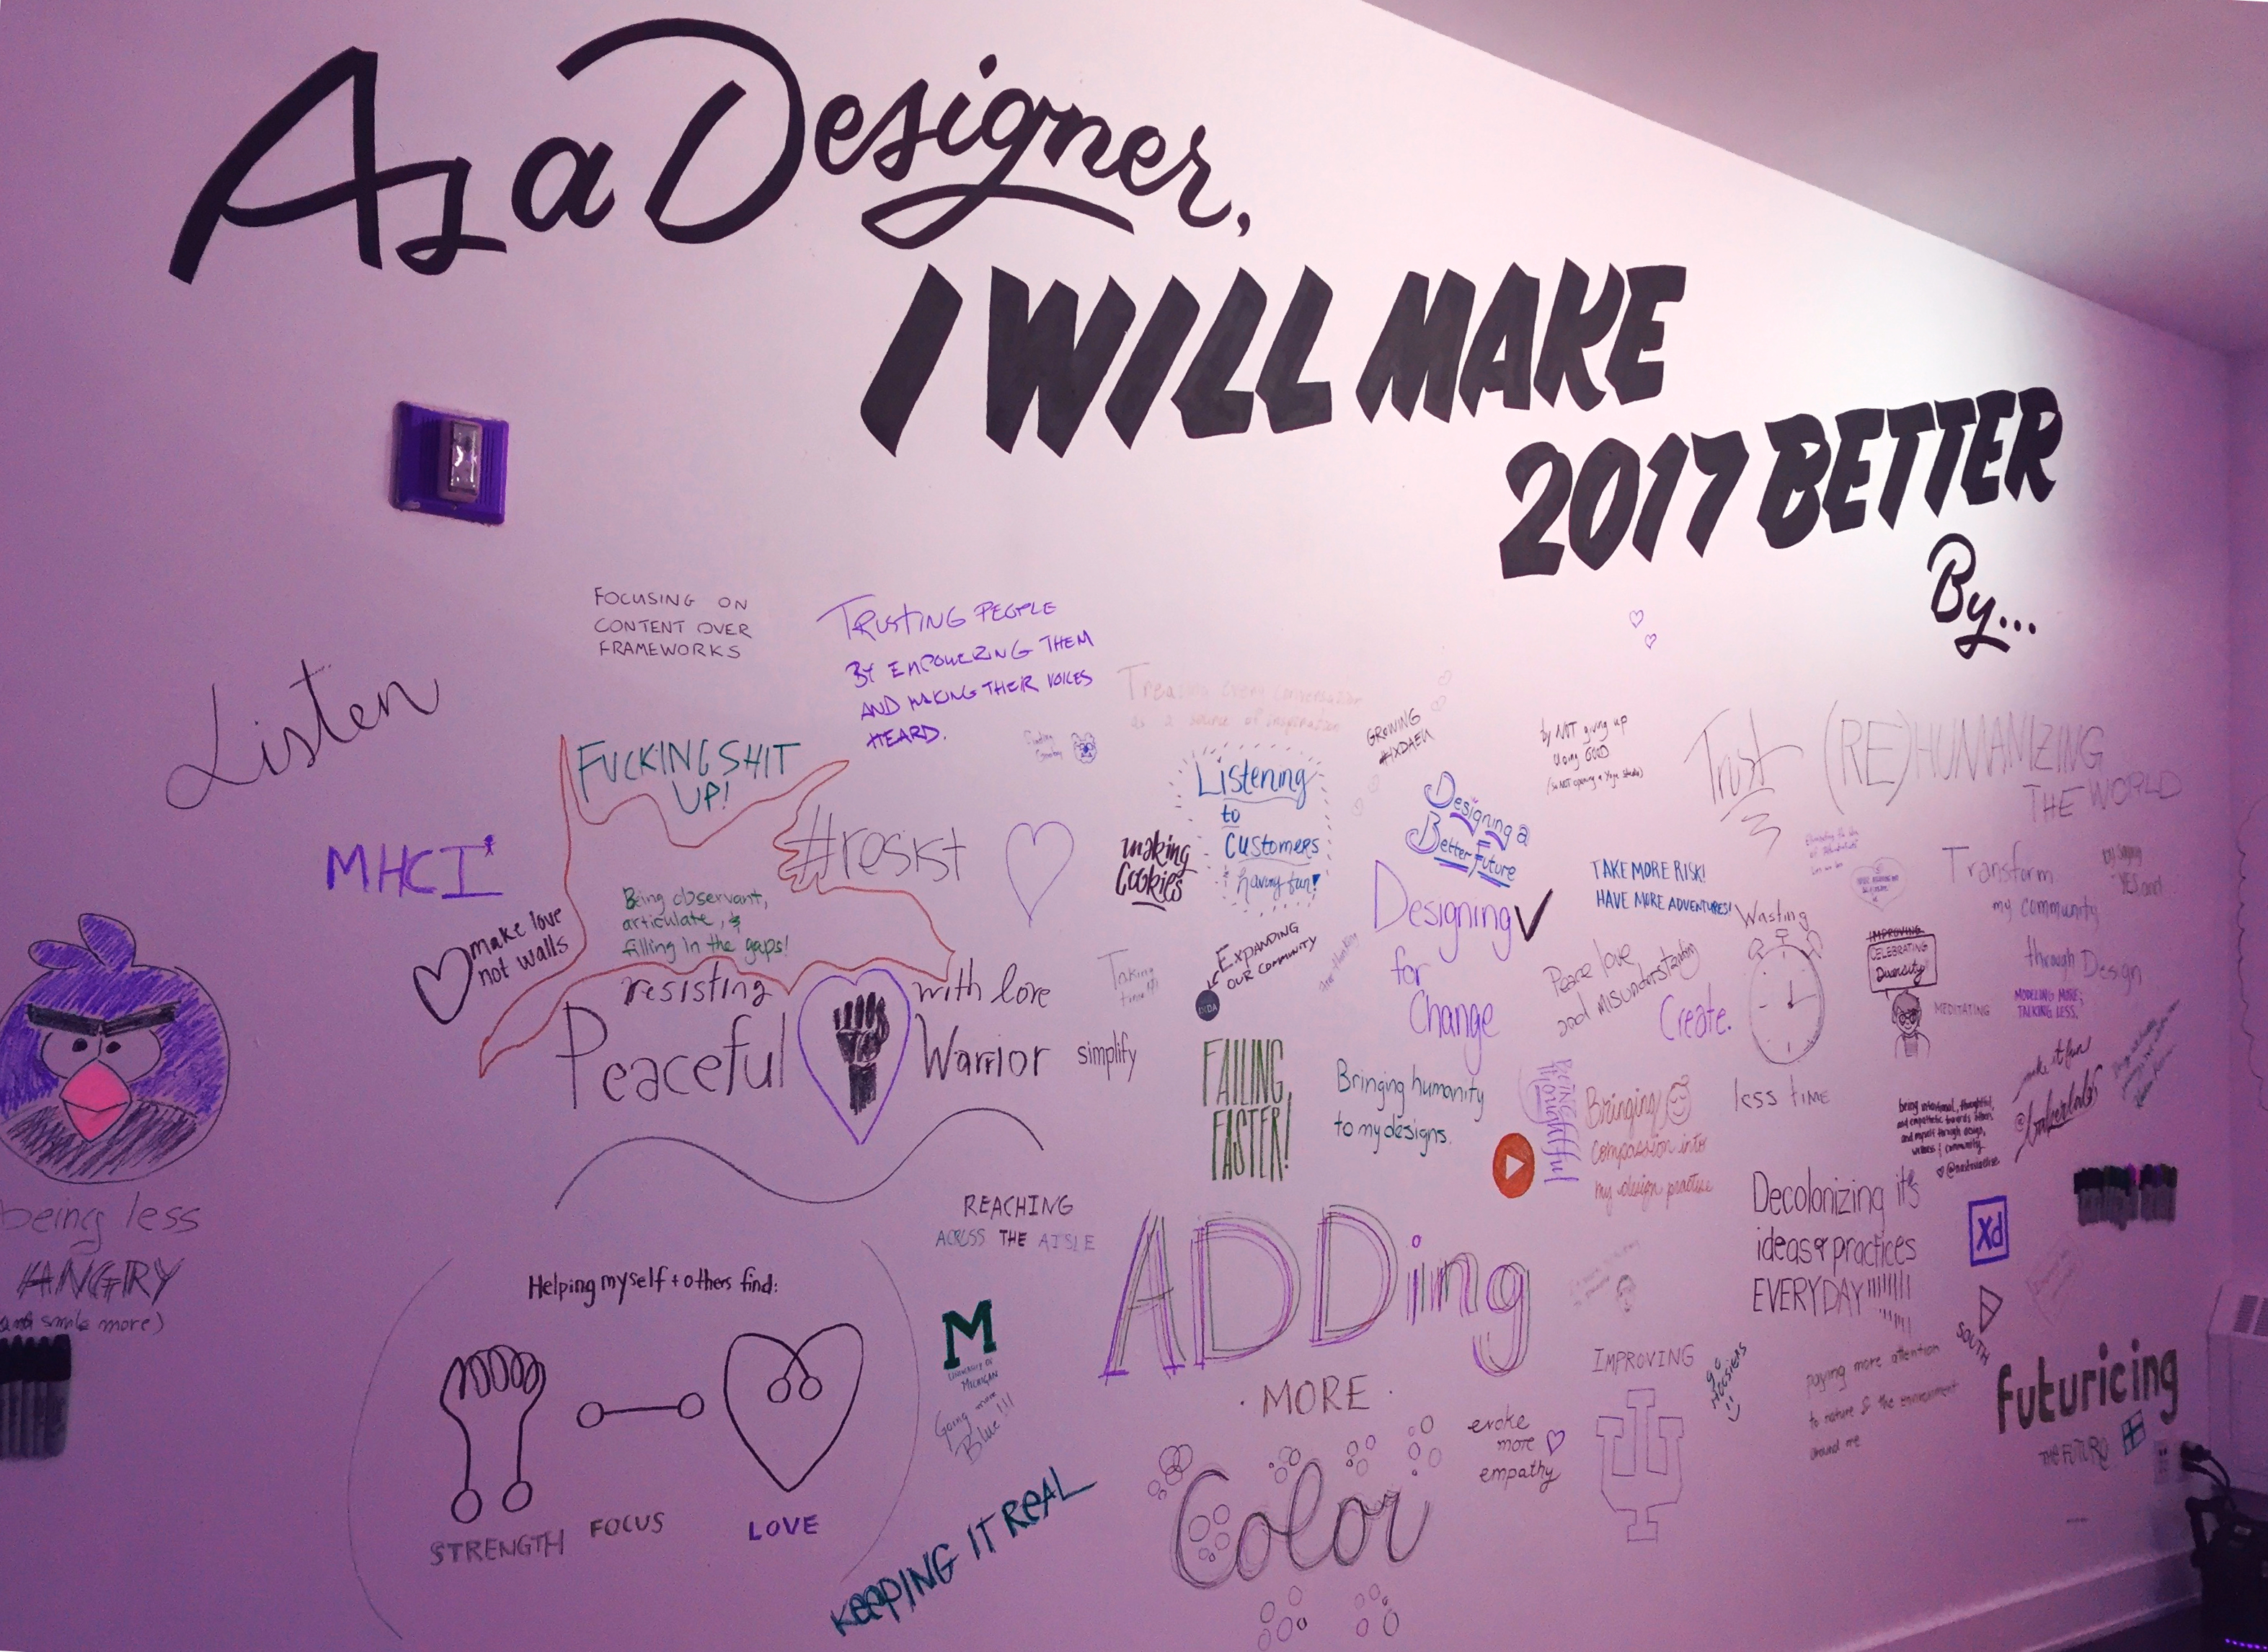 Designers write what they will do to make 2017 better.